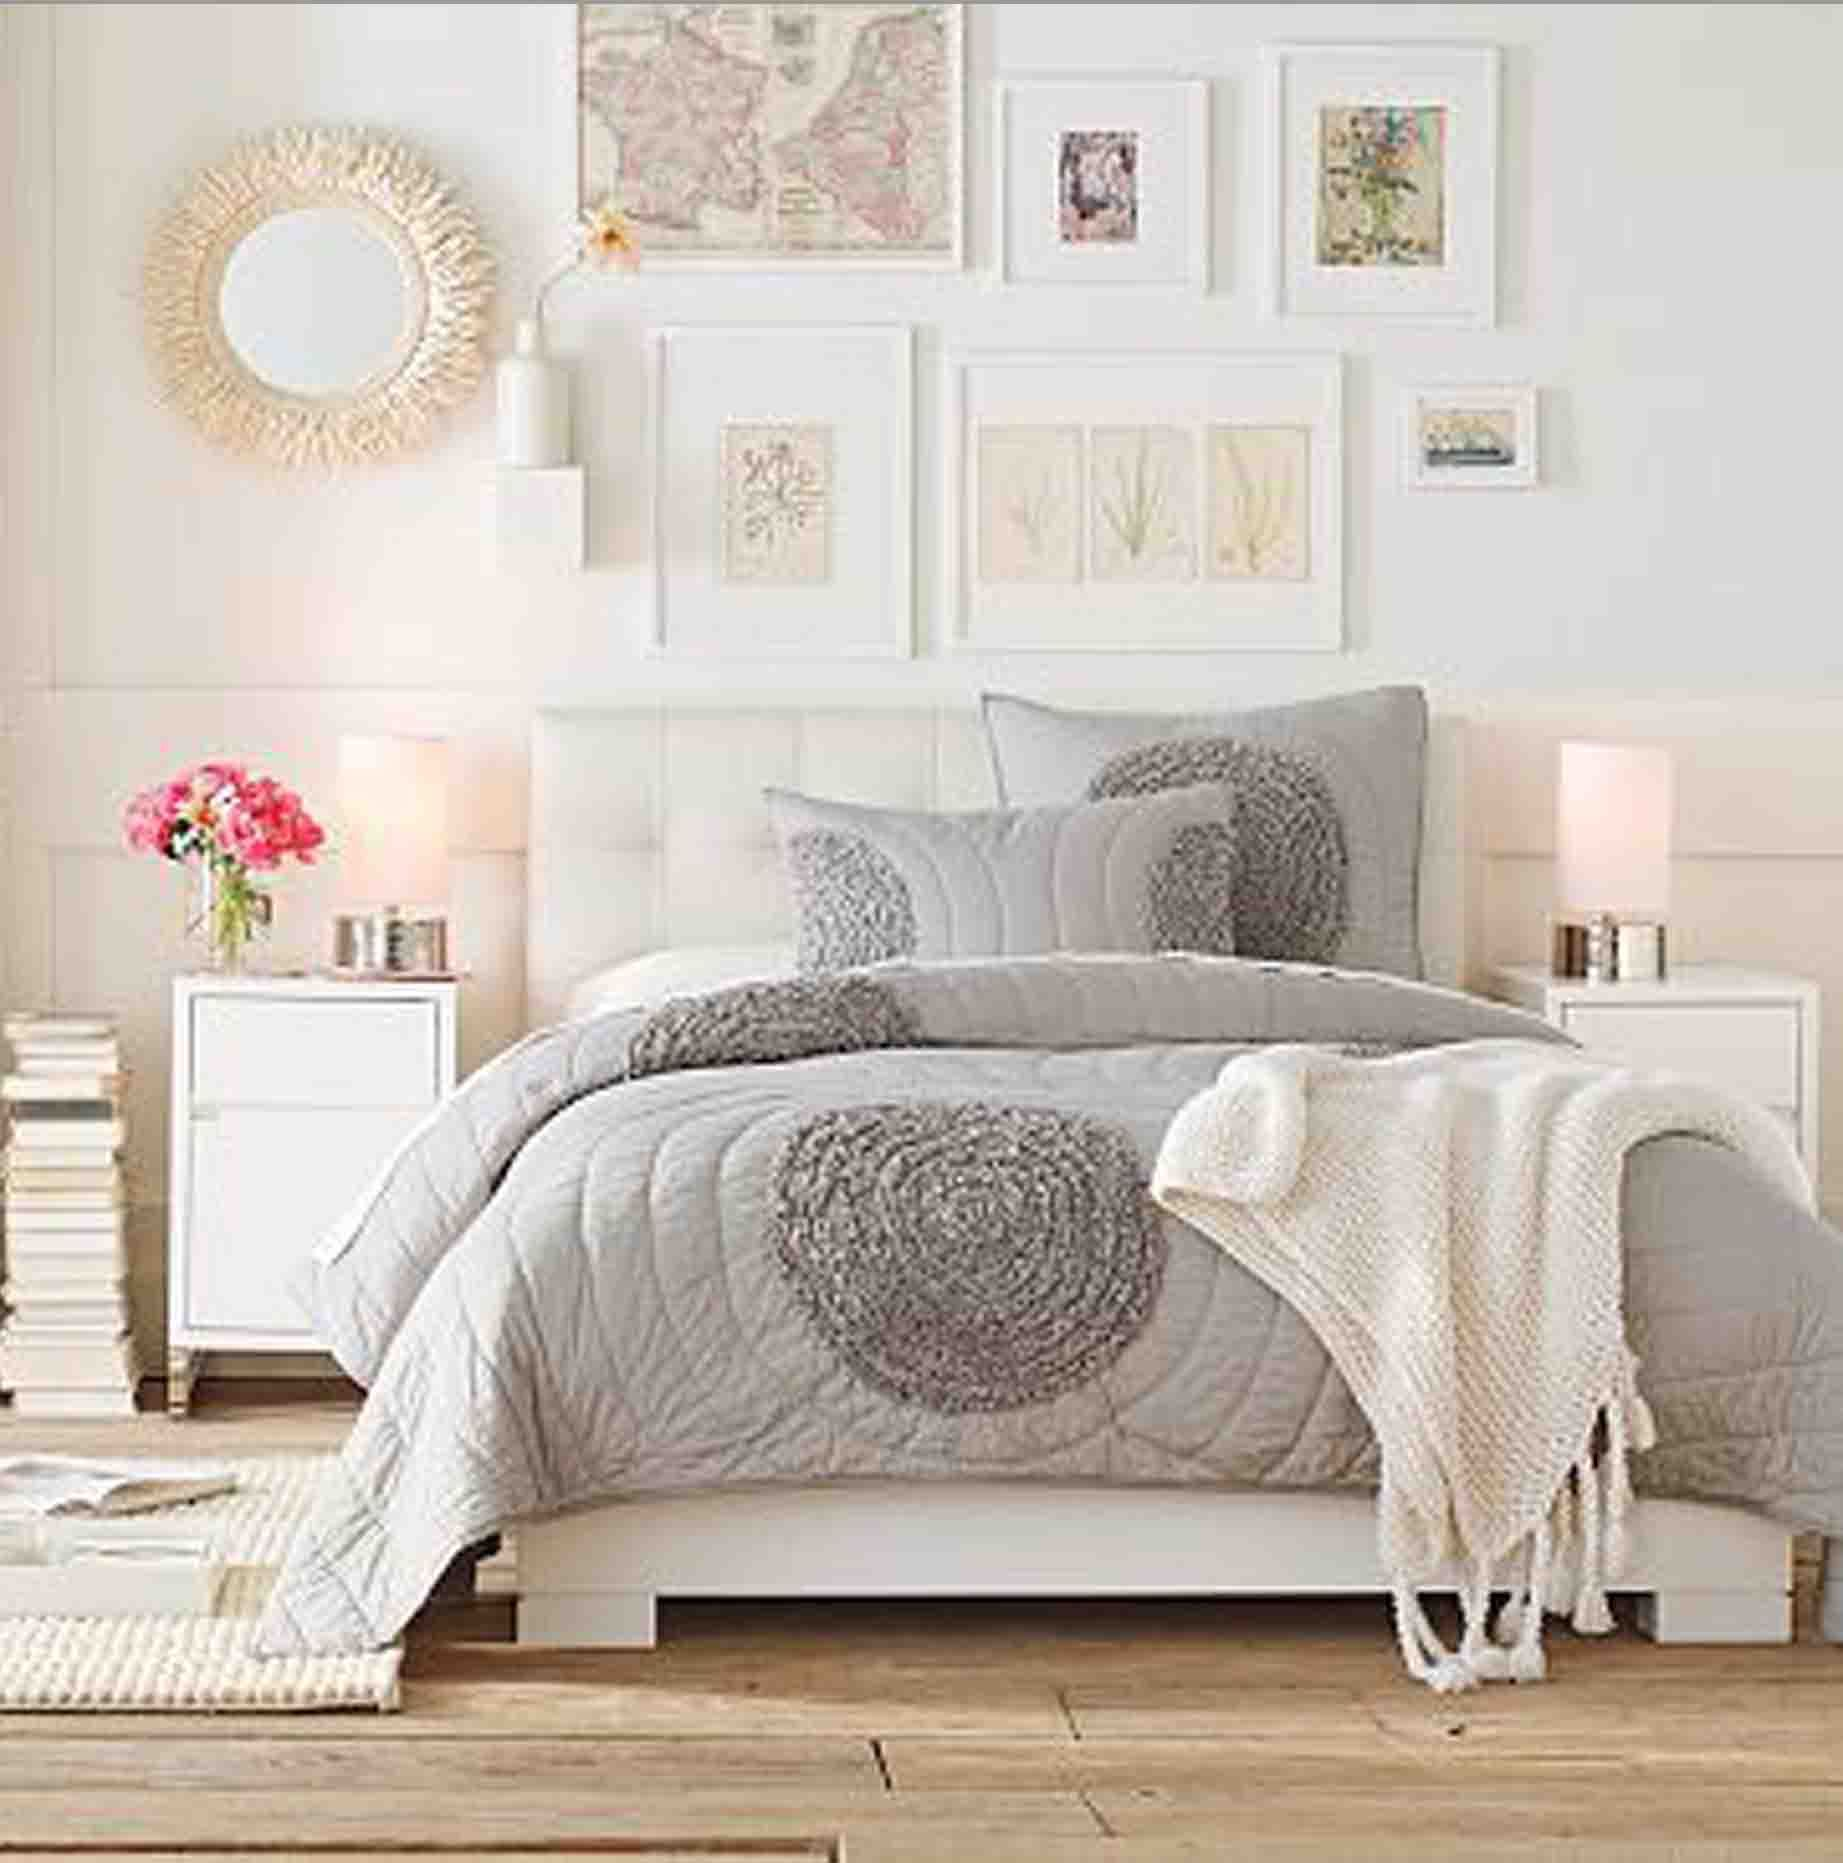 Light and bright bedroom ideas grey nutral white for Bedroom ideas light grey